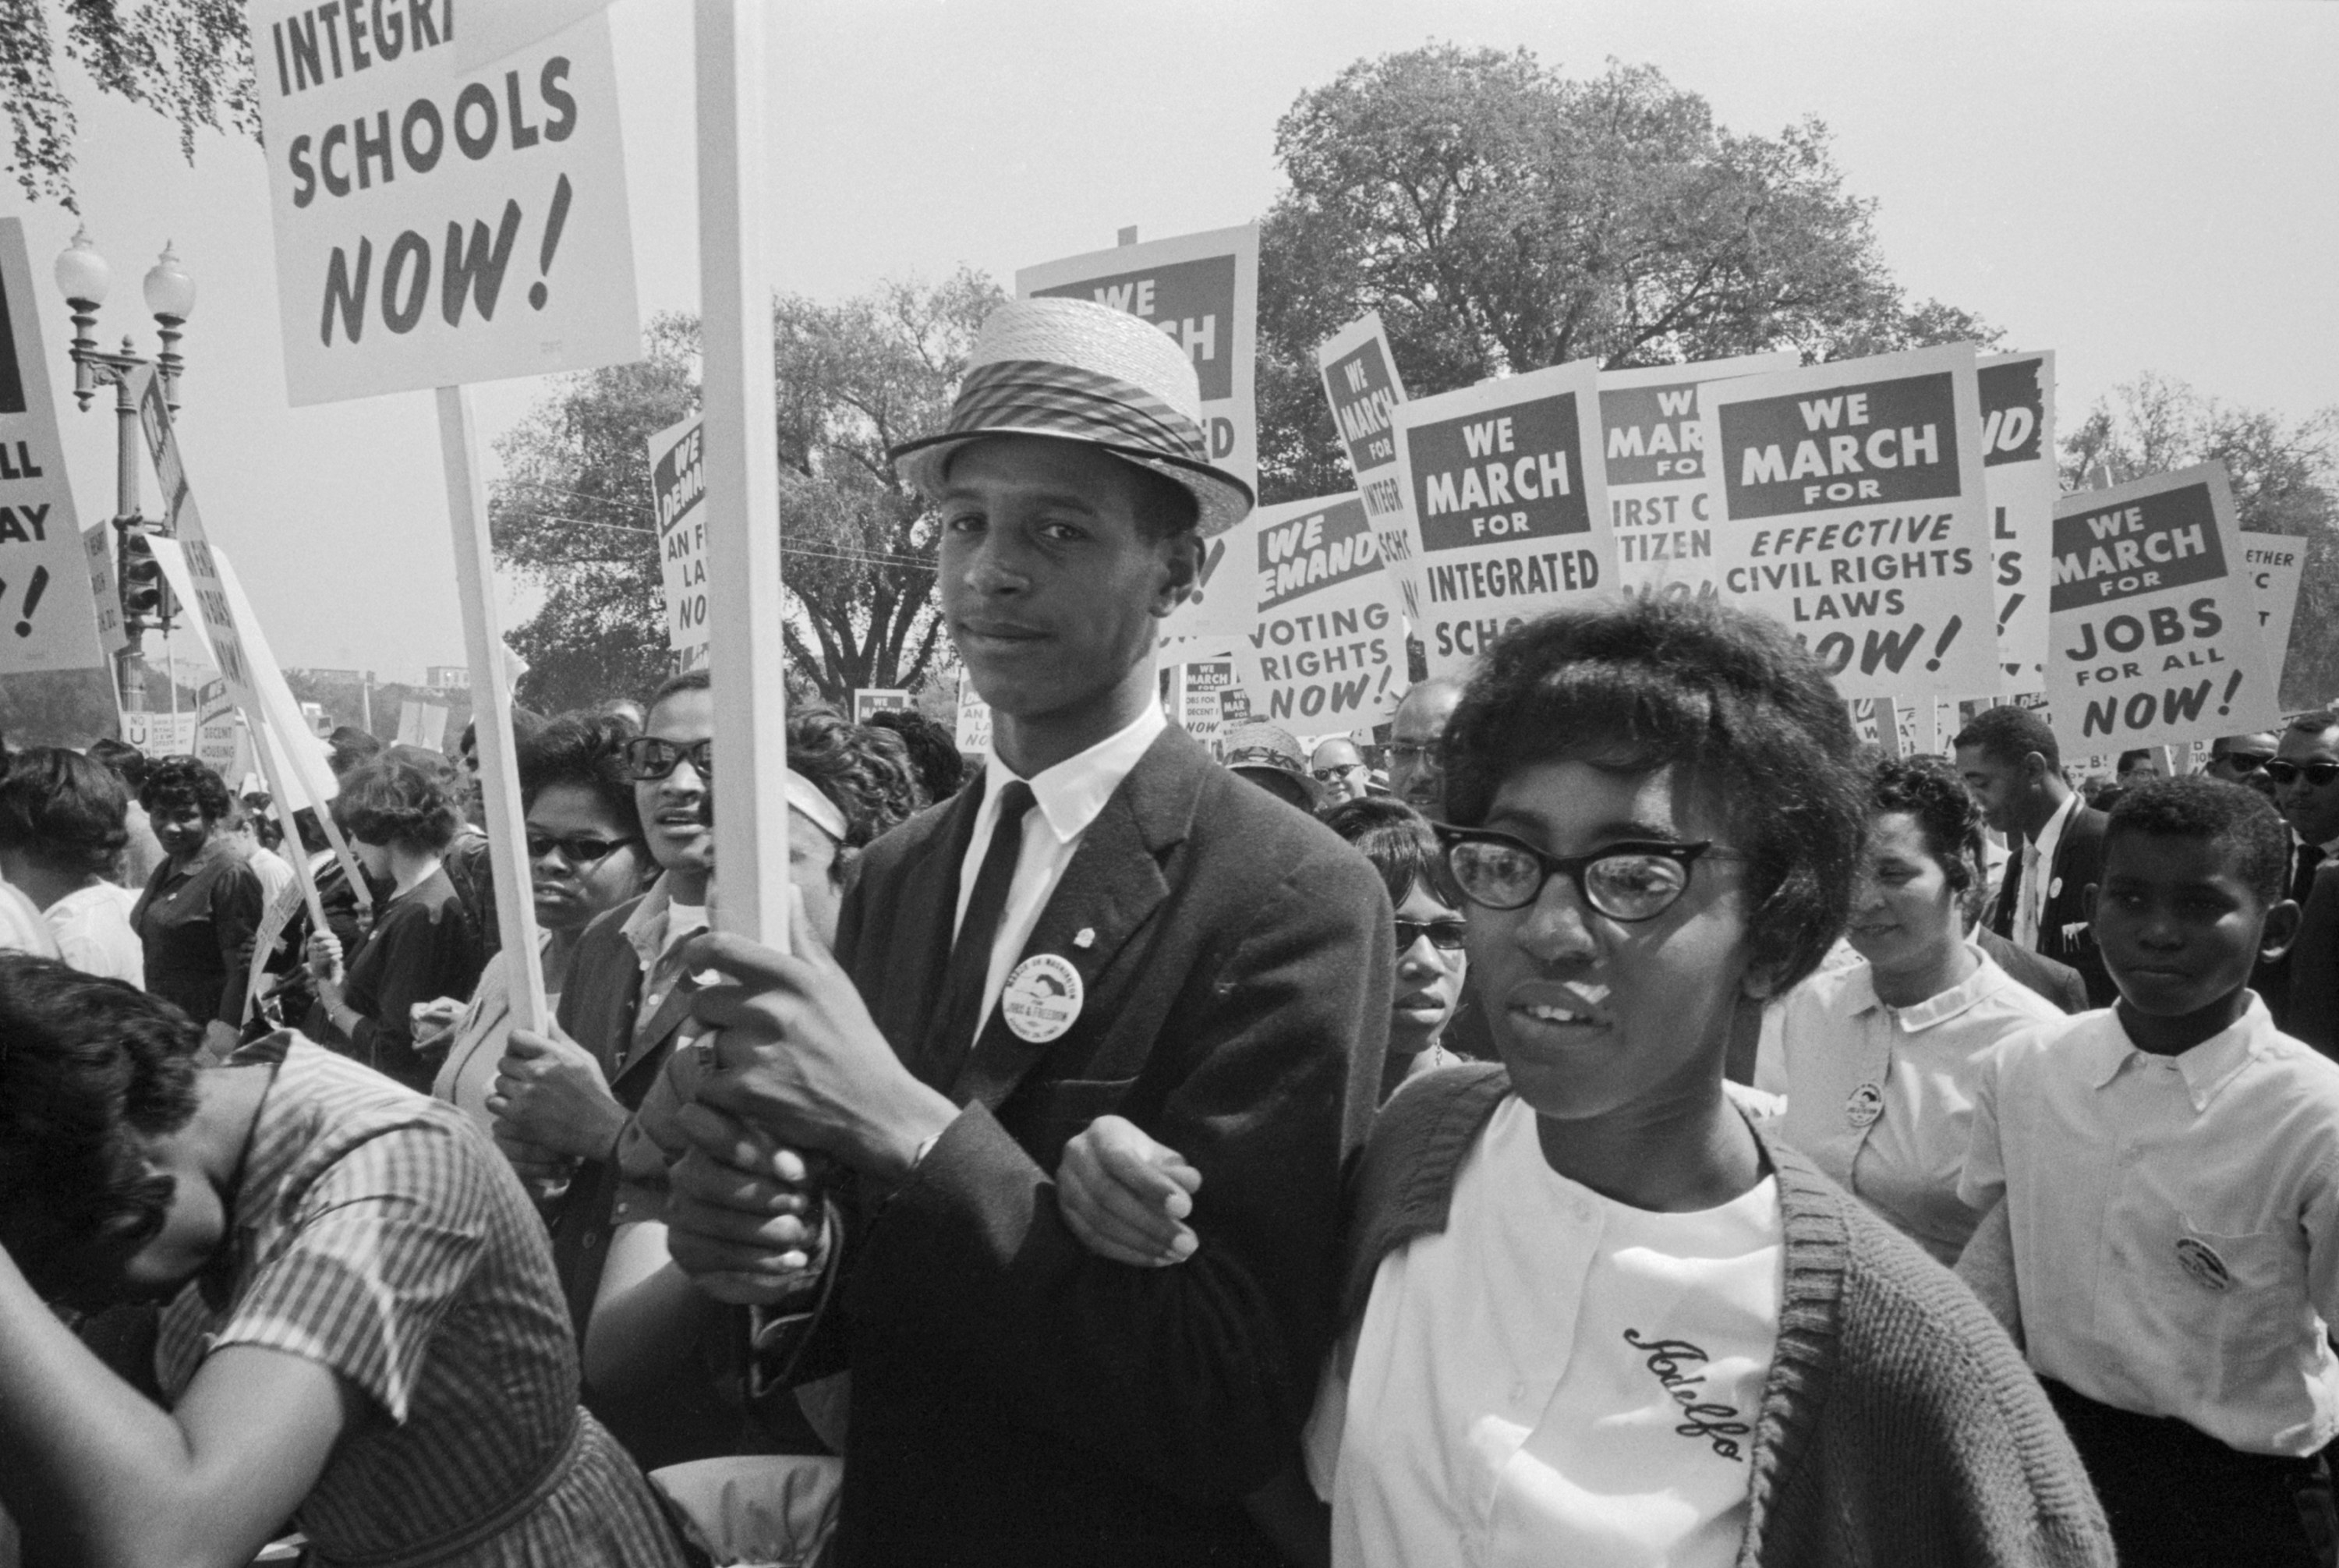 A young Black girl and boy marching with Black students, holding signs that call for integrated schools, voting rights, jobs, and civil rights